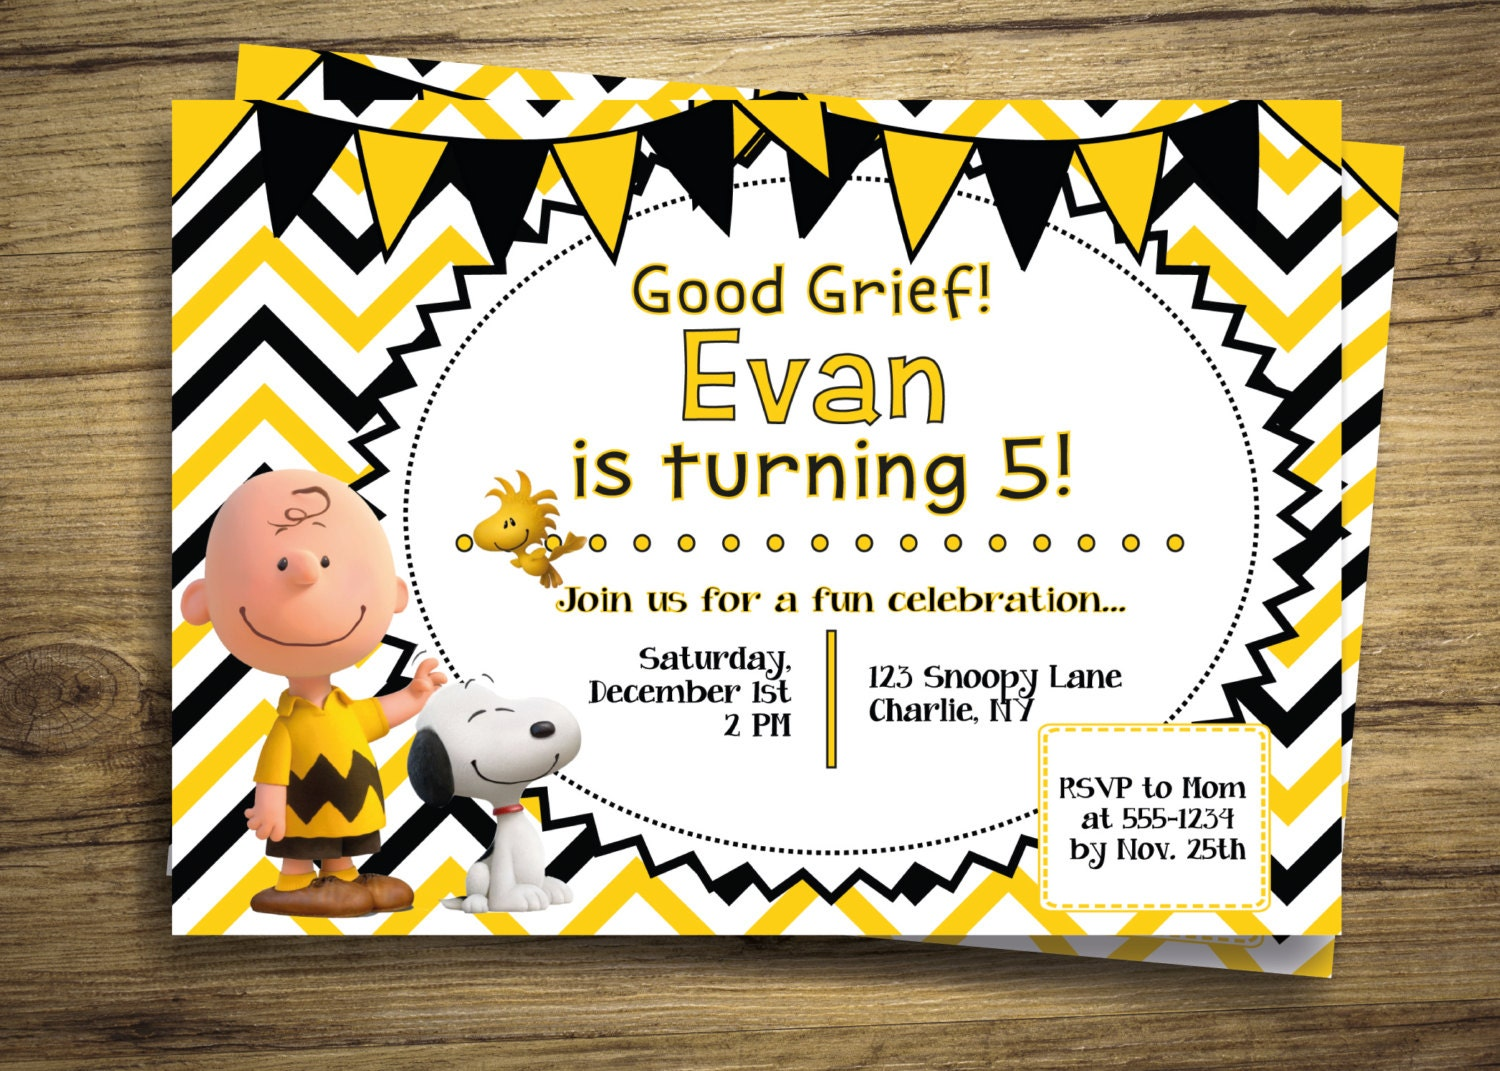 Charlie brown snoopy birthday party invitation peanuts zoom monicamarmolfo Image collections